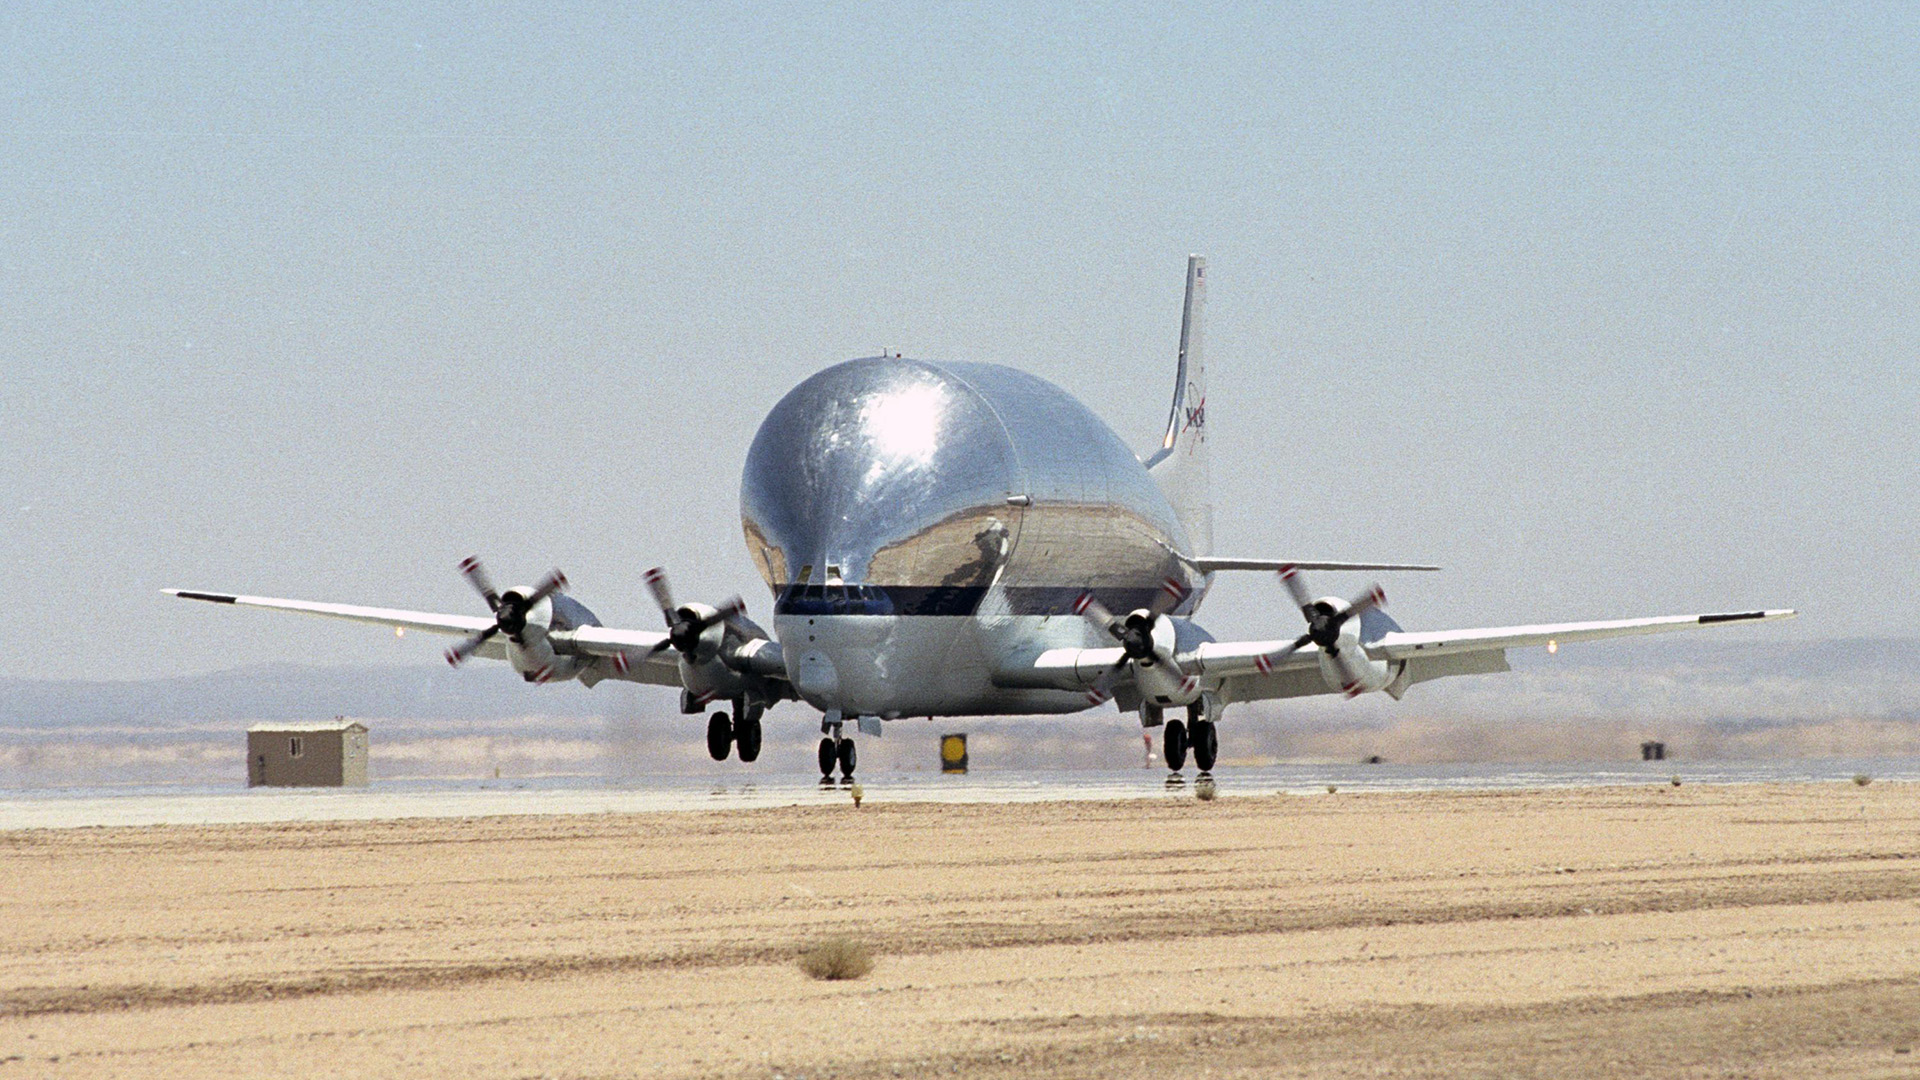 NASAs Super Guppy Awkward Old And Irreplaceable Tested - Examples future planes look according nasa